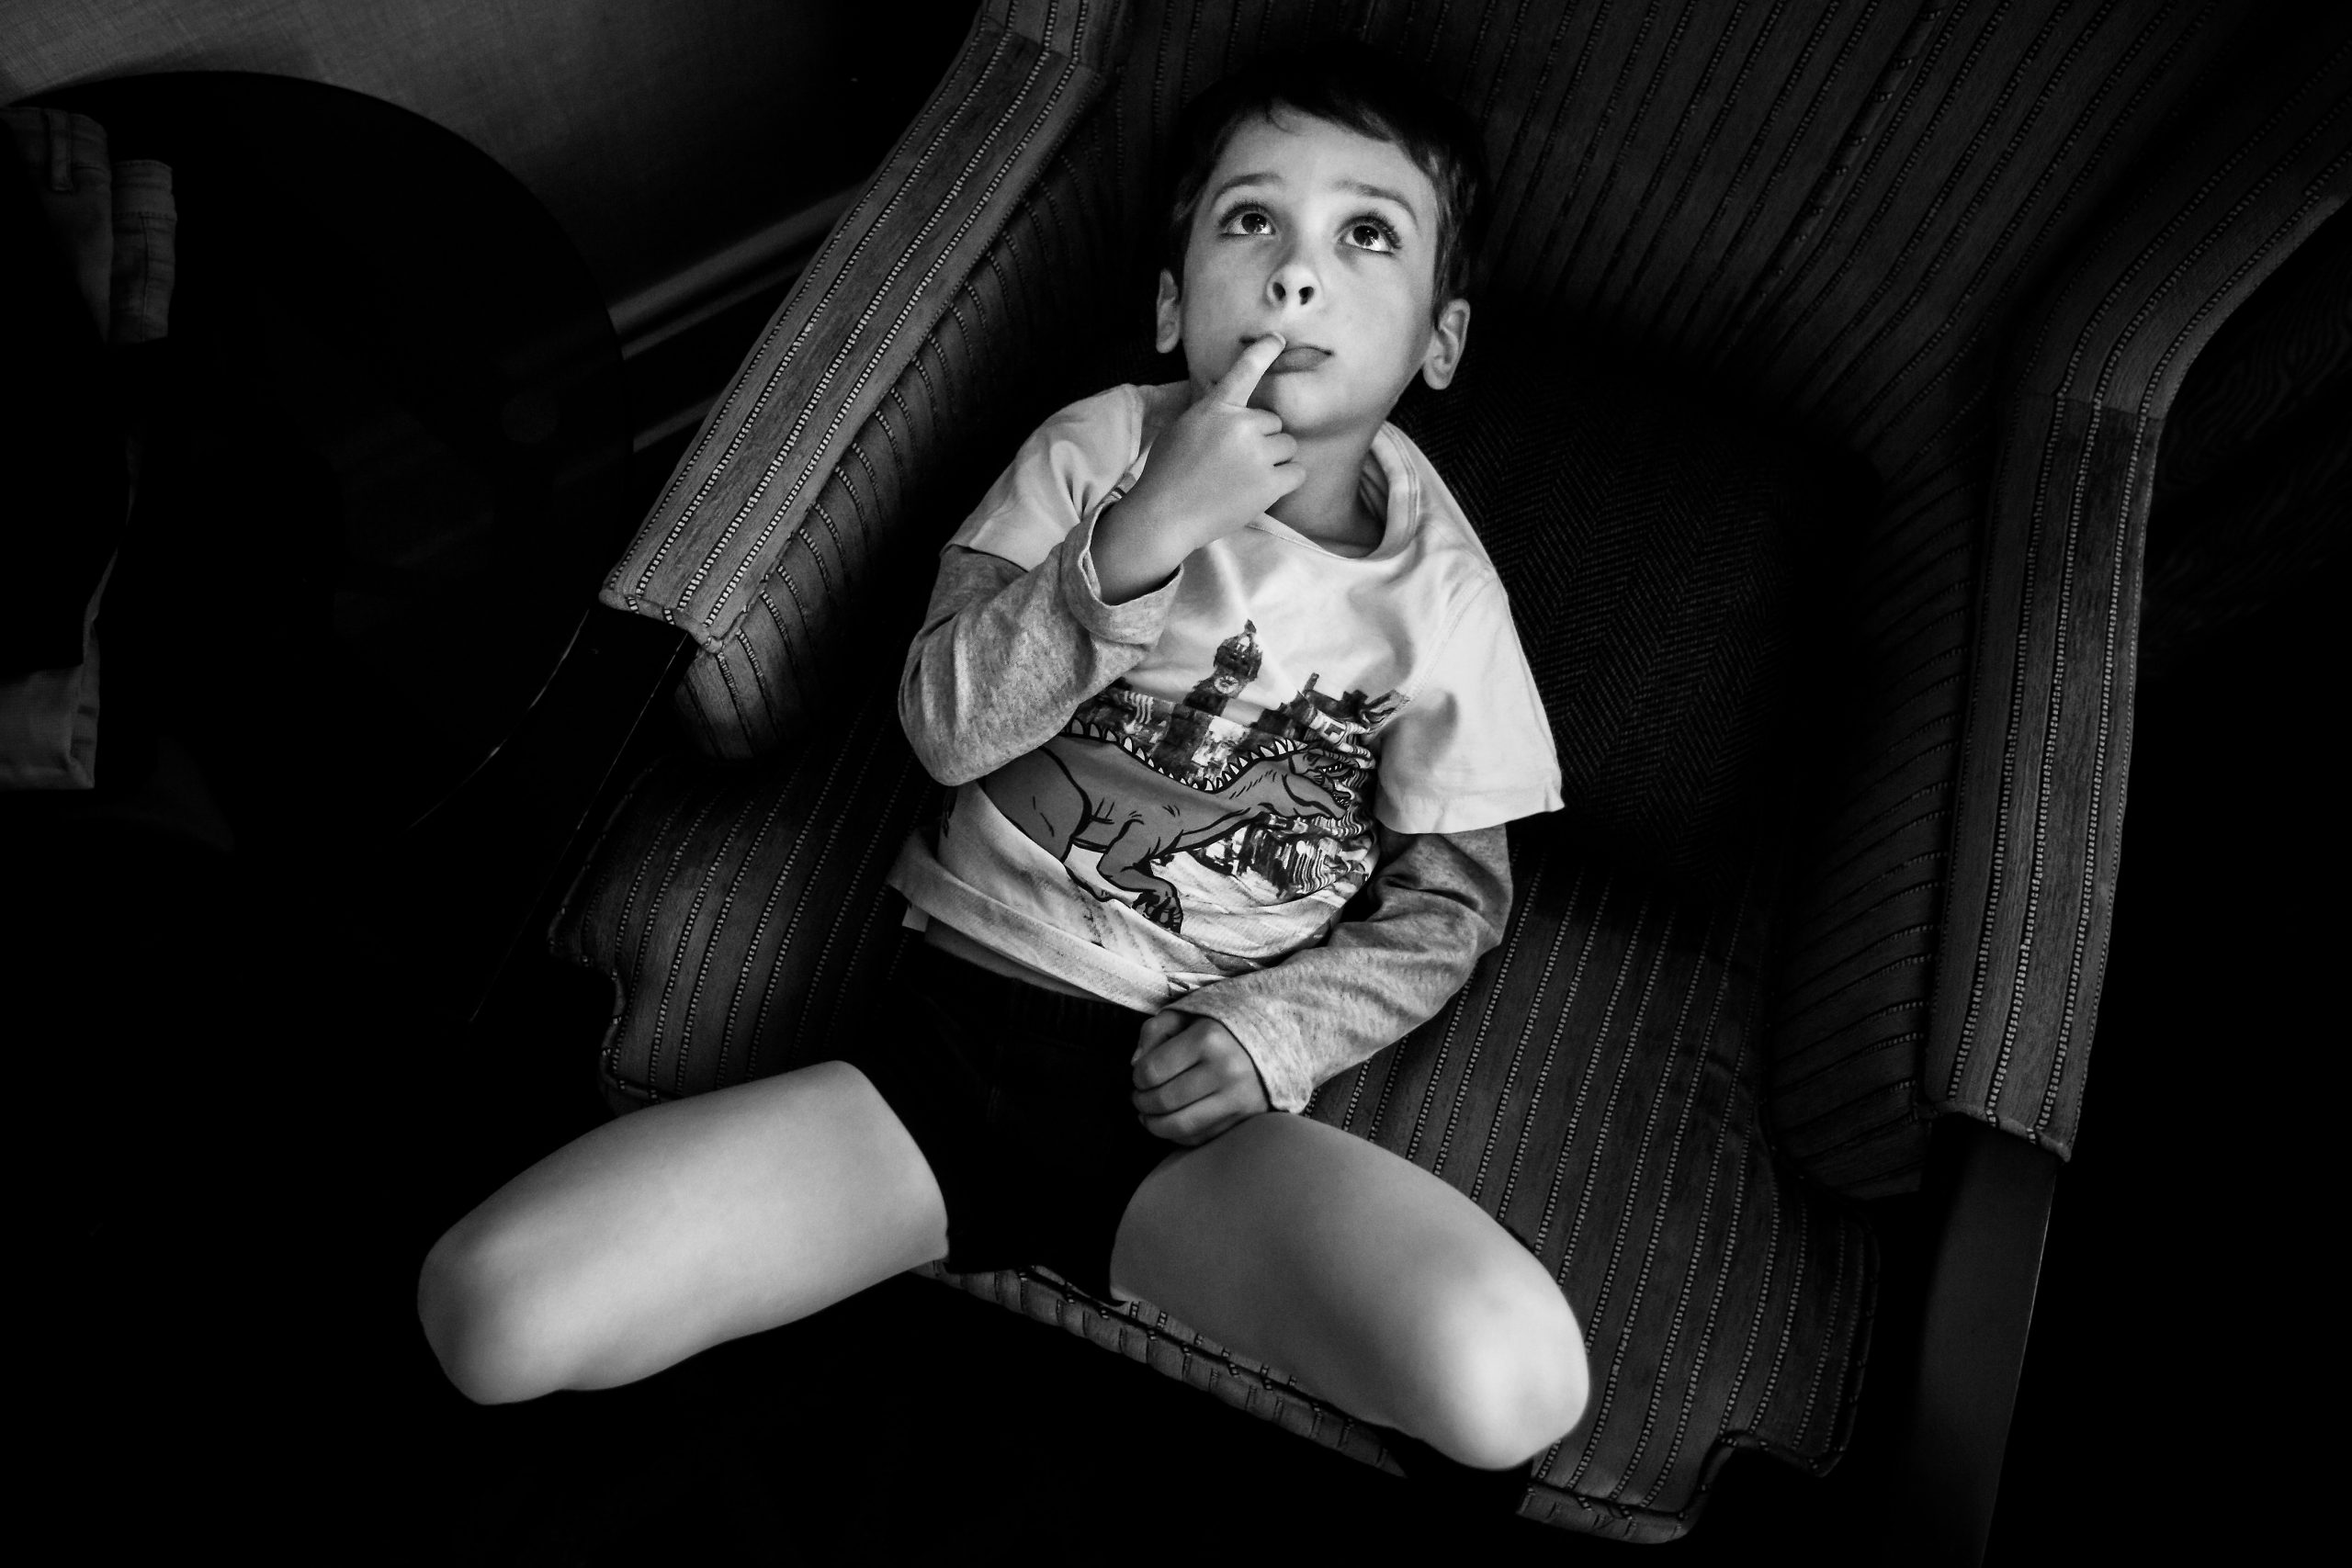 A little boy sits on a sofa with his fingers on his lips